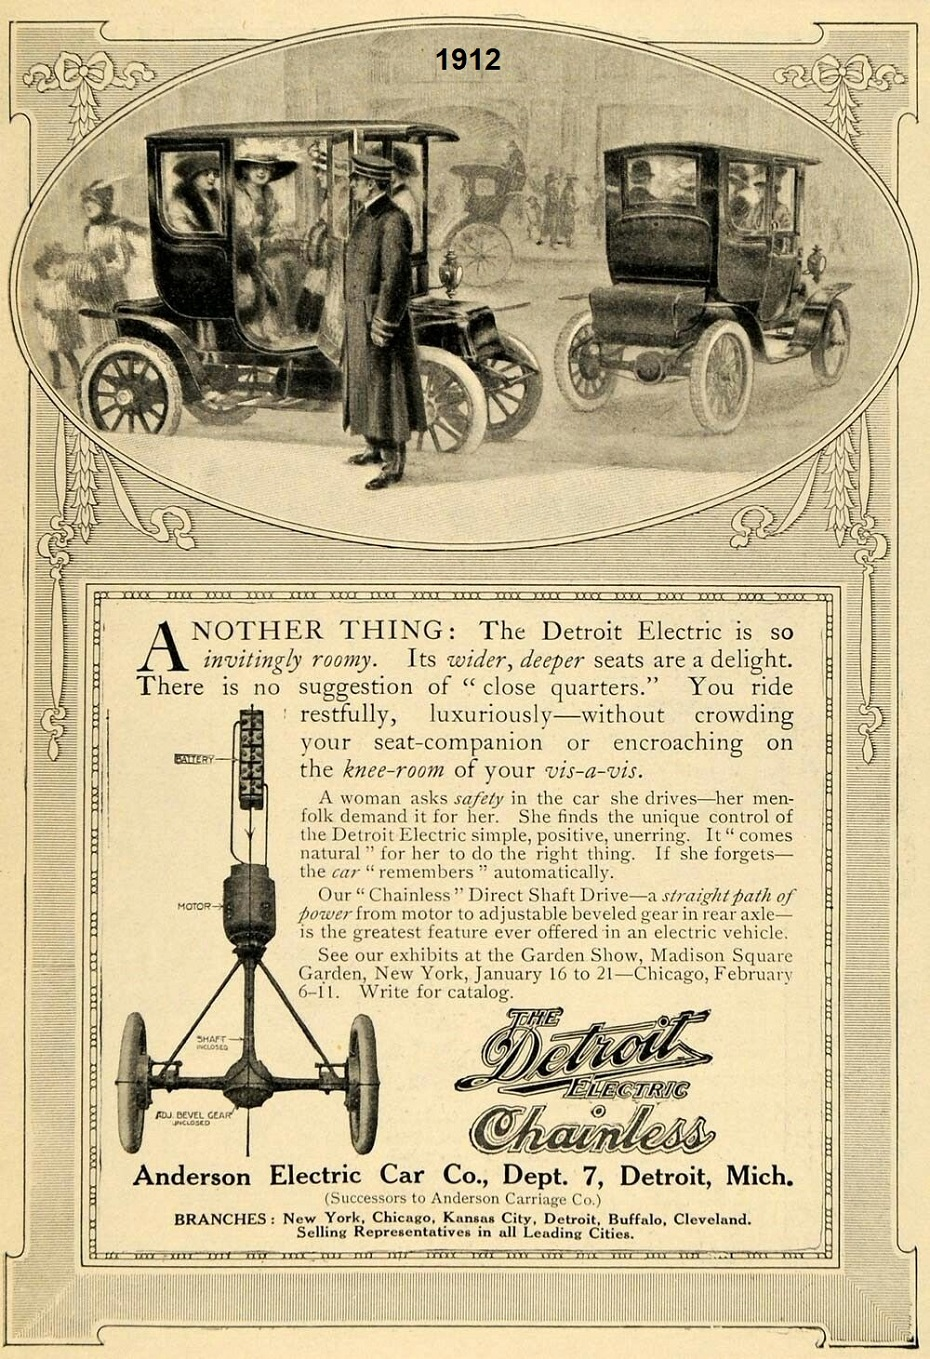 1912 Anderson Electric Car Co